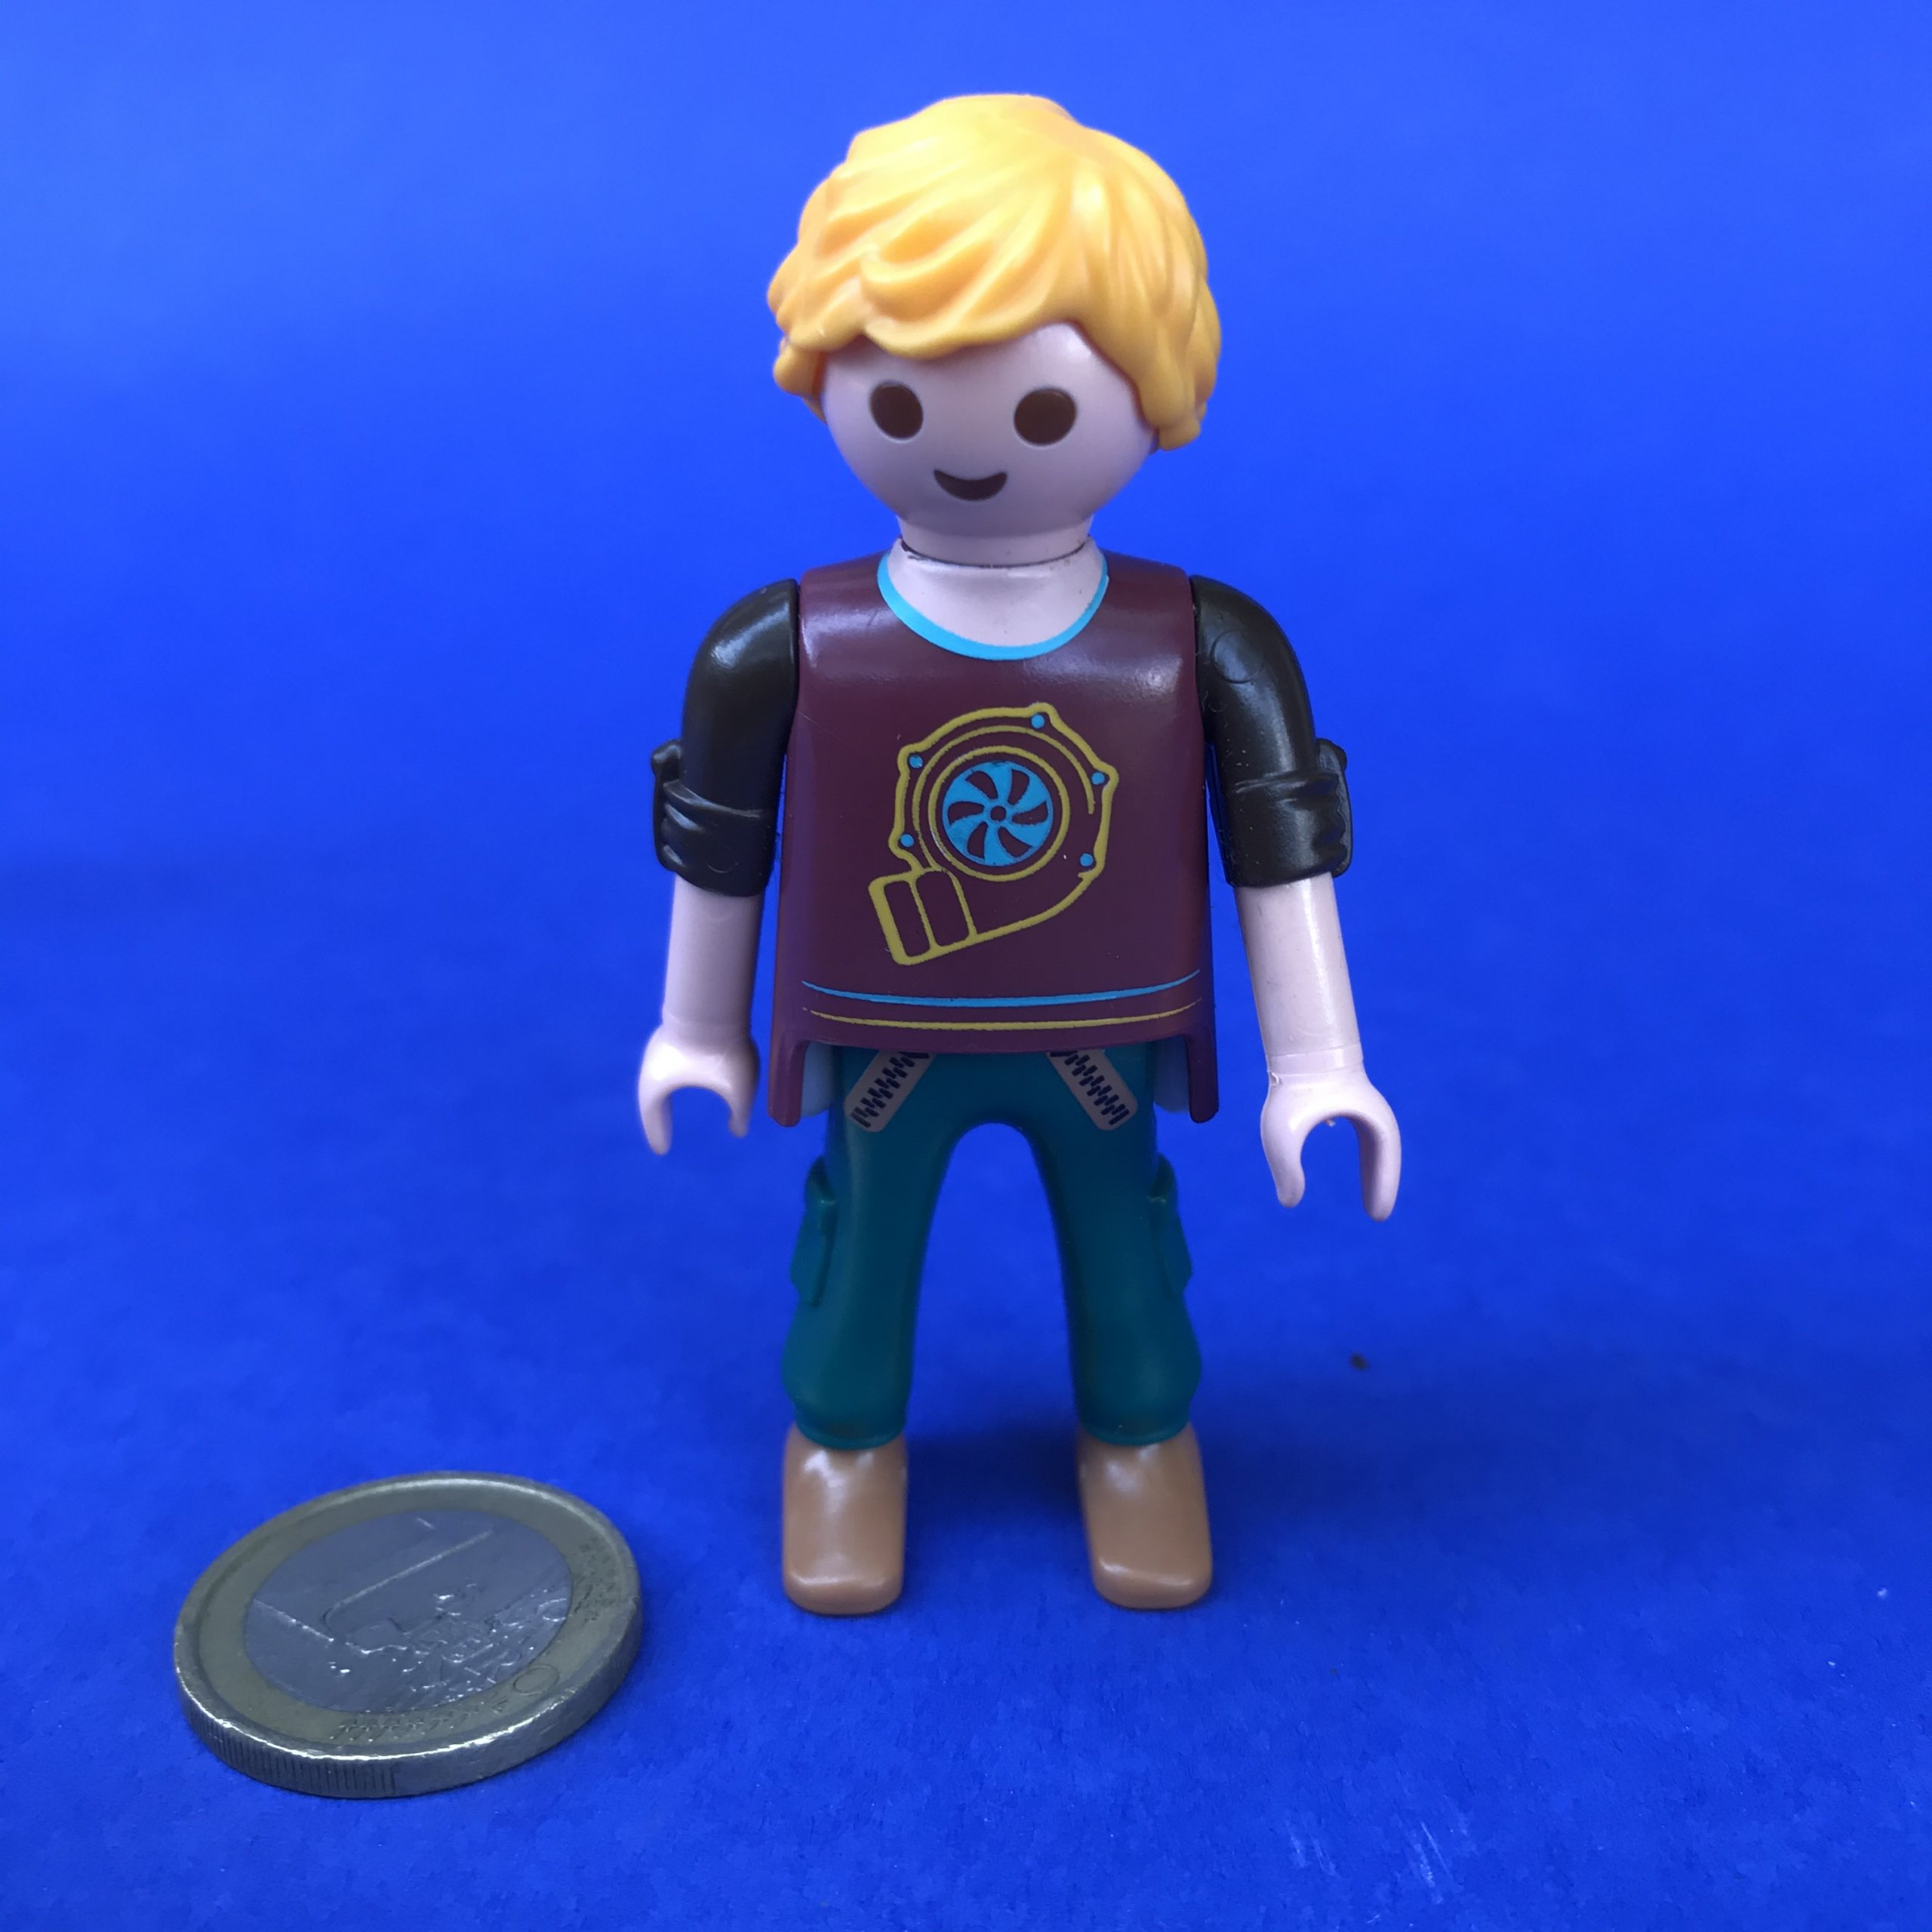 Playmobil-man-blond